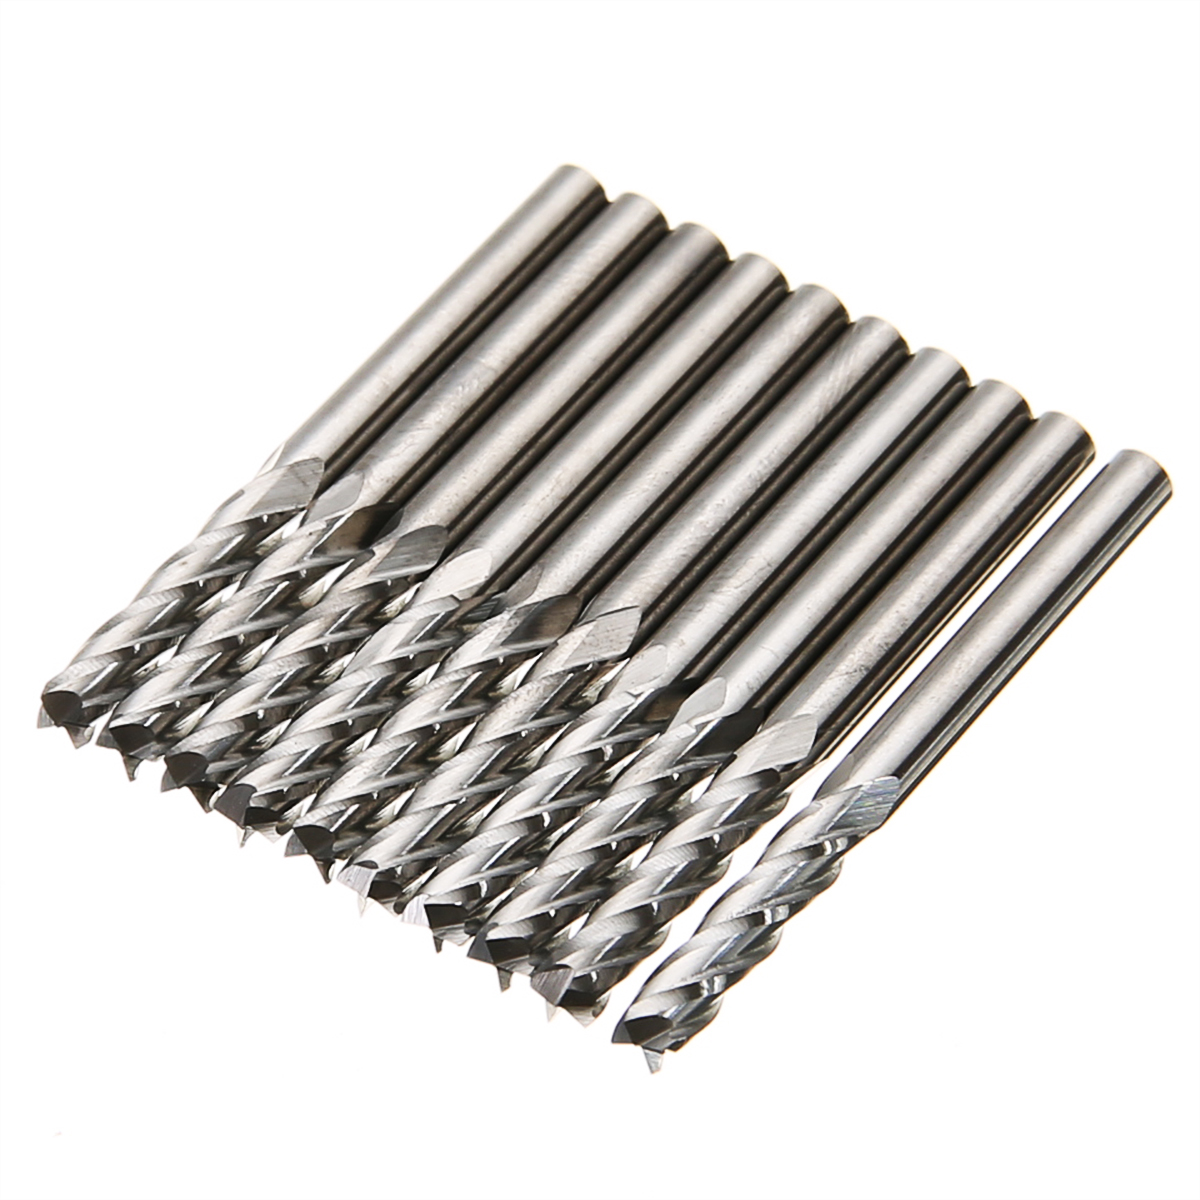 цена на 10pcs/set Carbide Spiral End Mill Cutter 4 Flutes CNC Milling Cutter Tool 1/8'' Shank 15mm For Power Tool